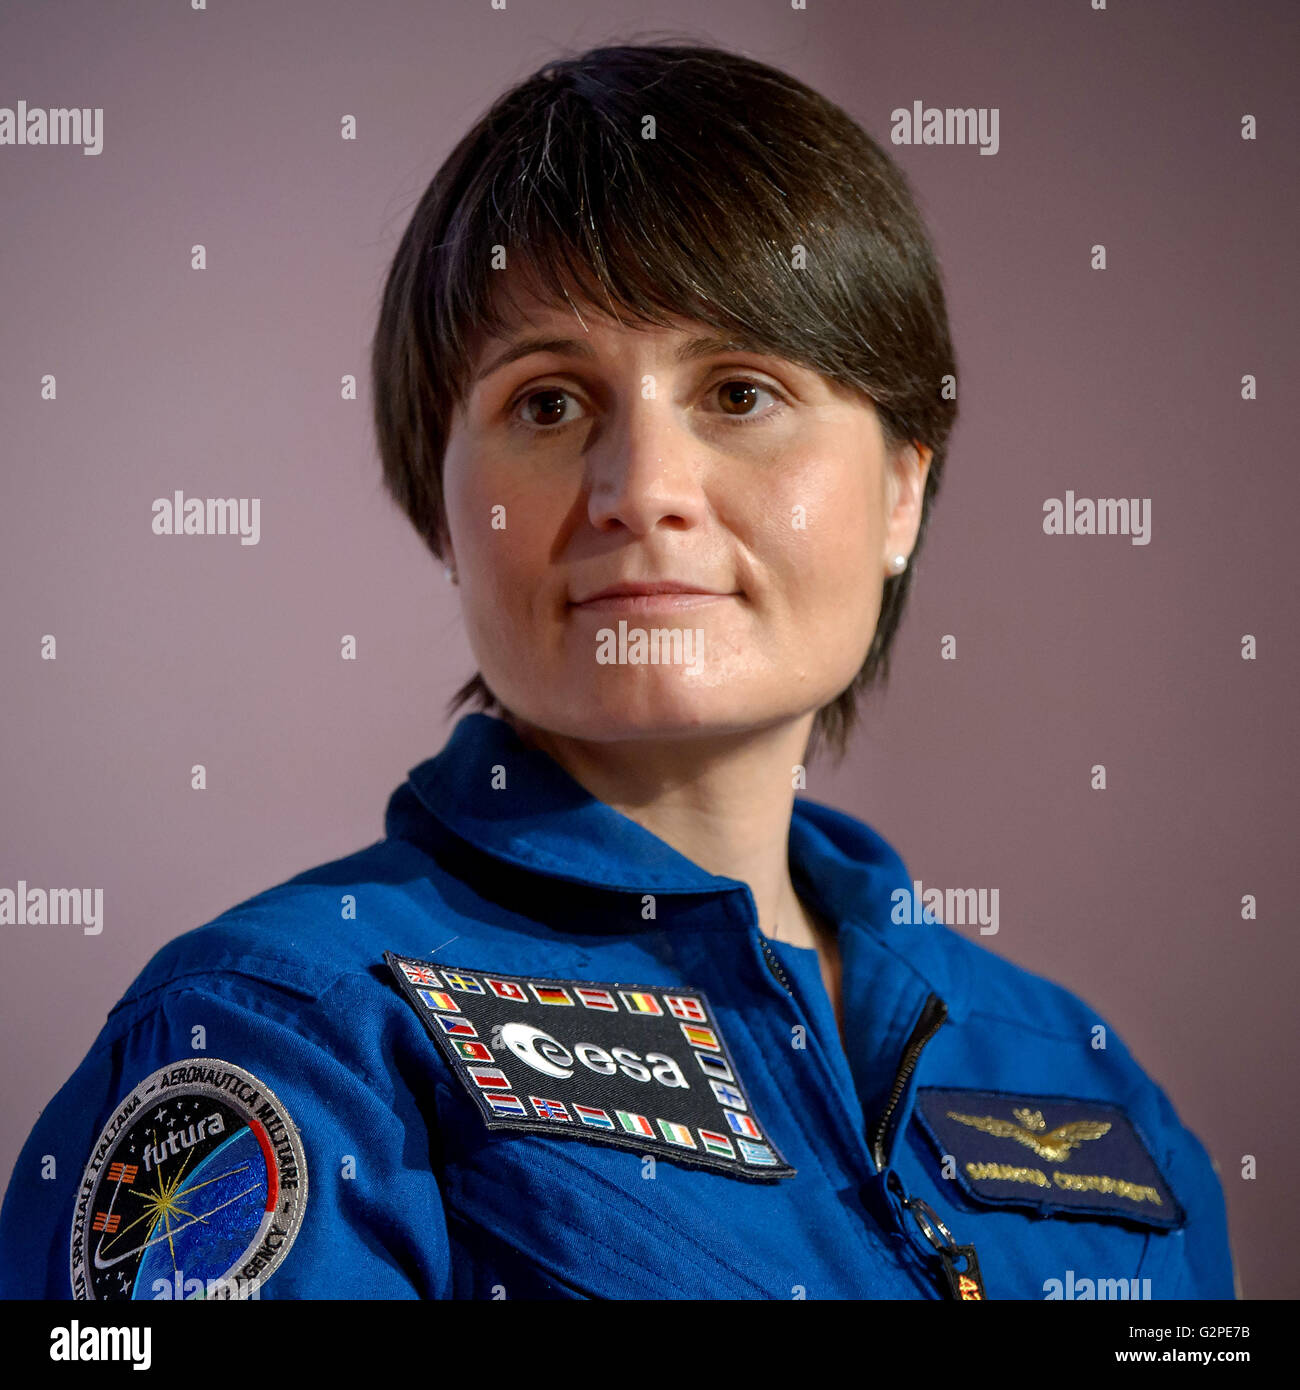 astronaut european space agency - photo #14